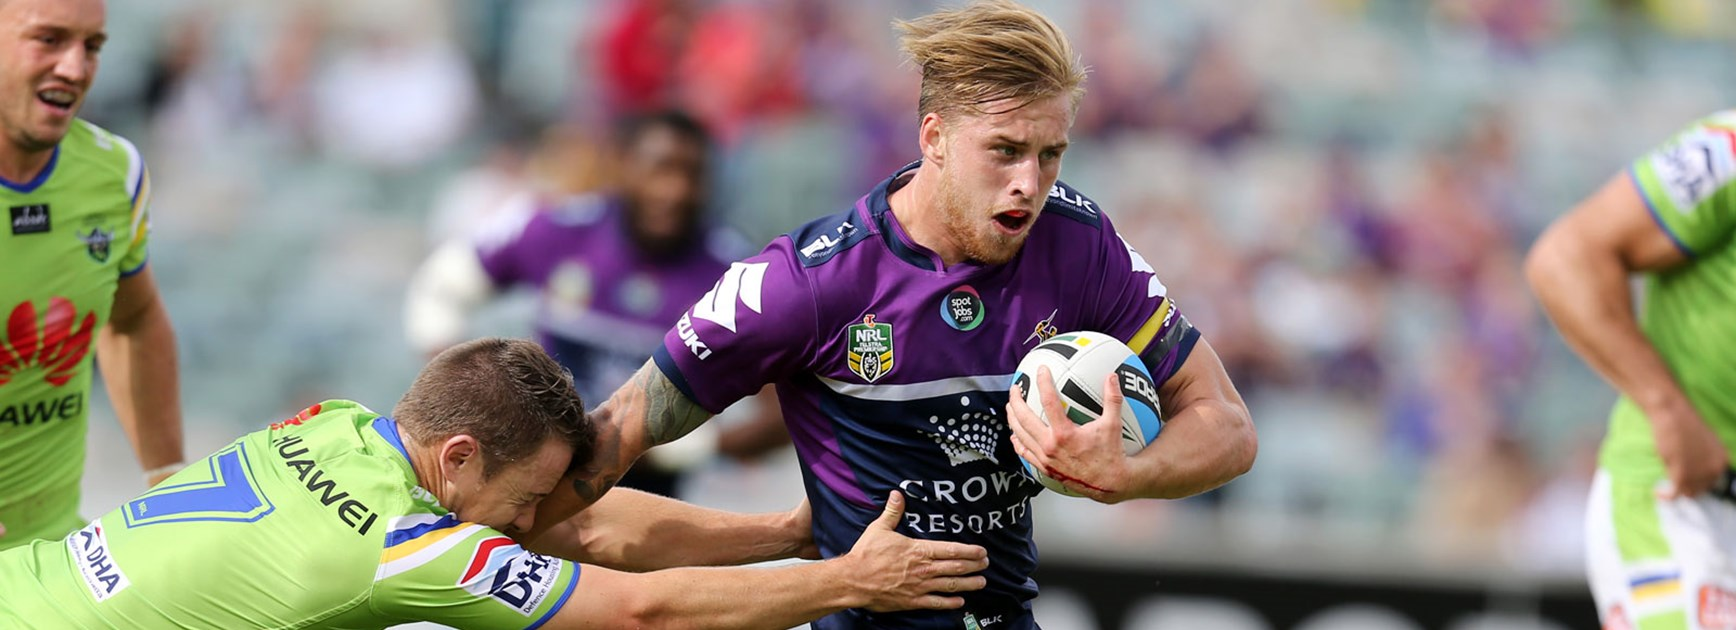 Cameron Munster in action for the Storm against the Raiders in Round 6.